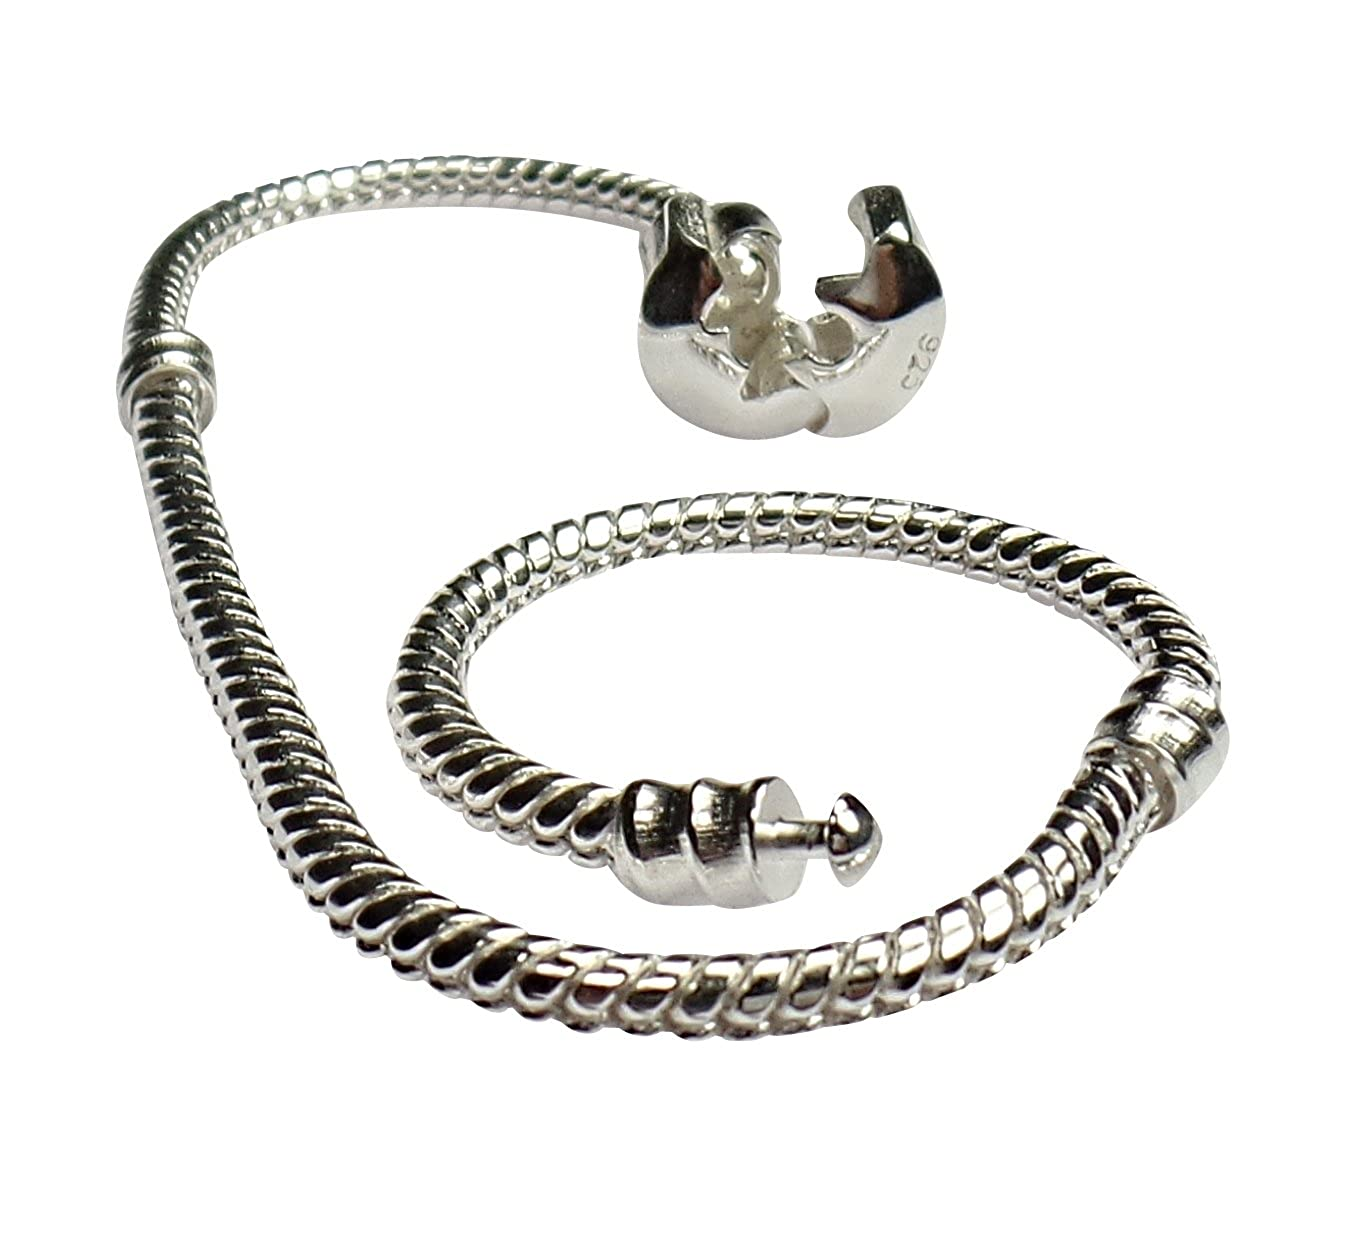 18cm Genuine Sterling Silver Snap Clasp Snake Charm Bracelet, Compatible with well known Beads, Charms, Clips and Stoppers. Beads R Us BRU2